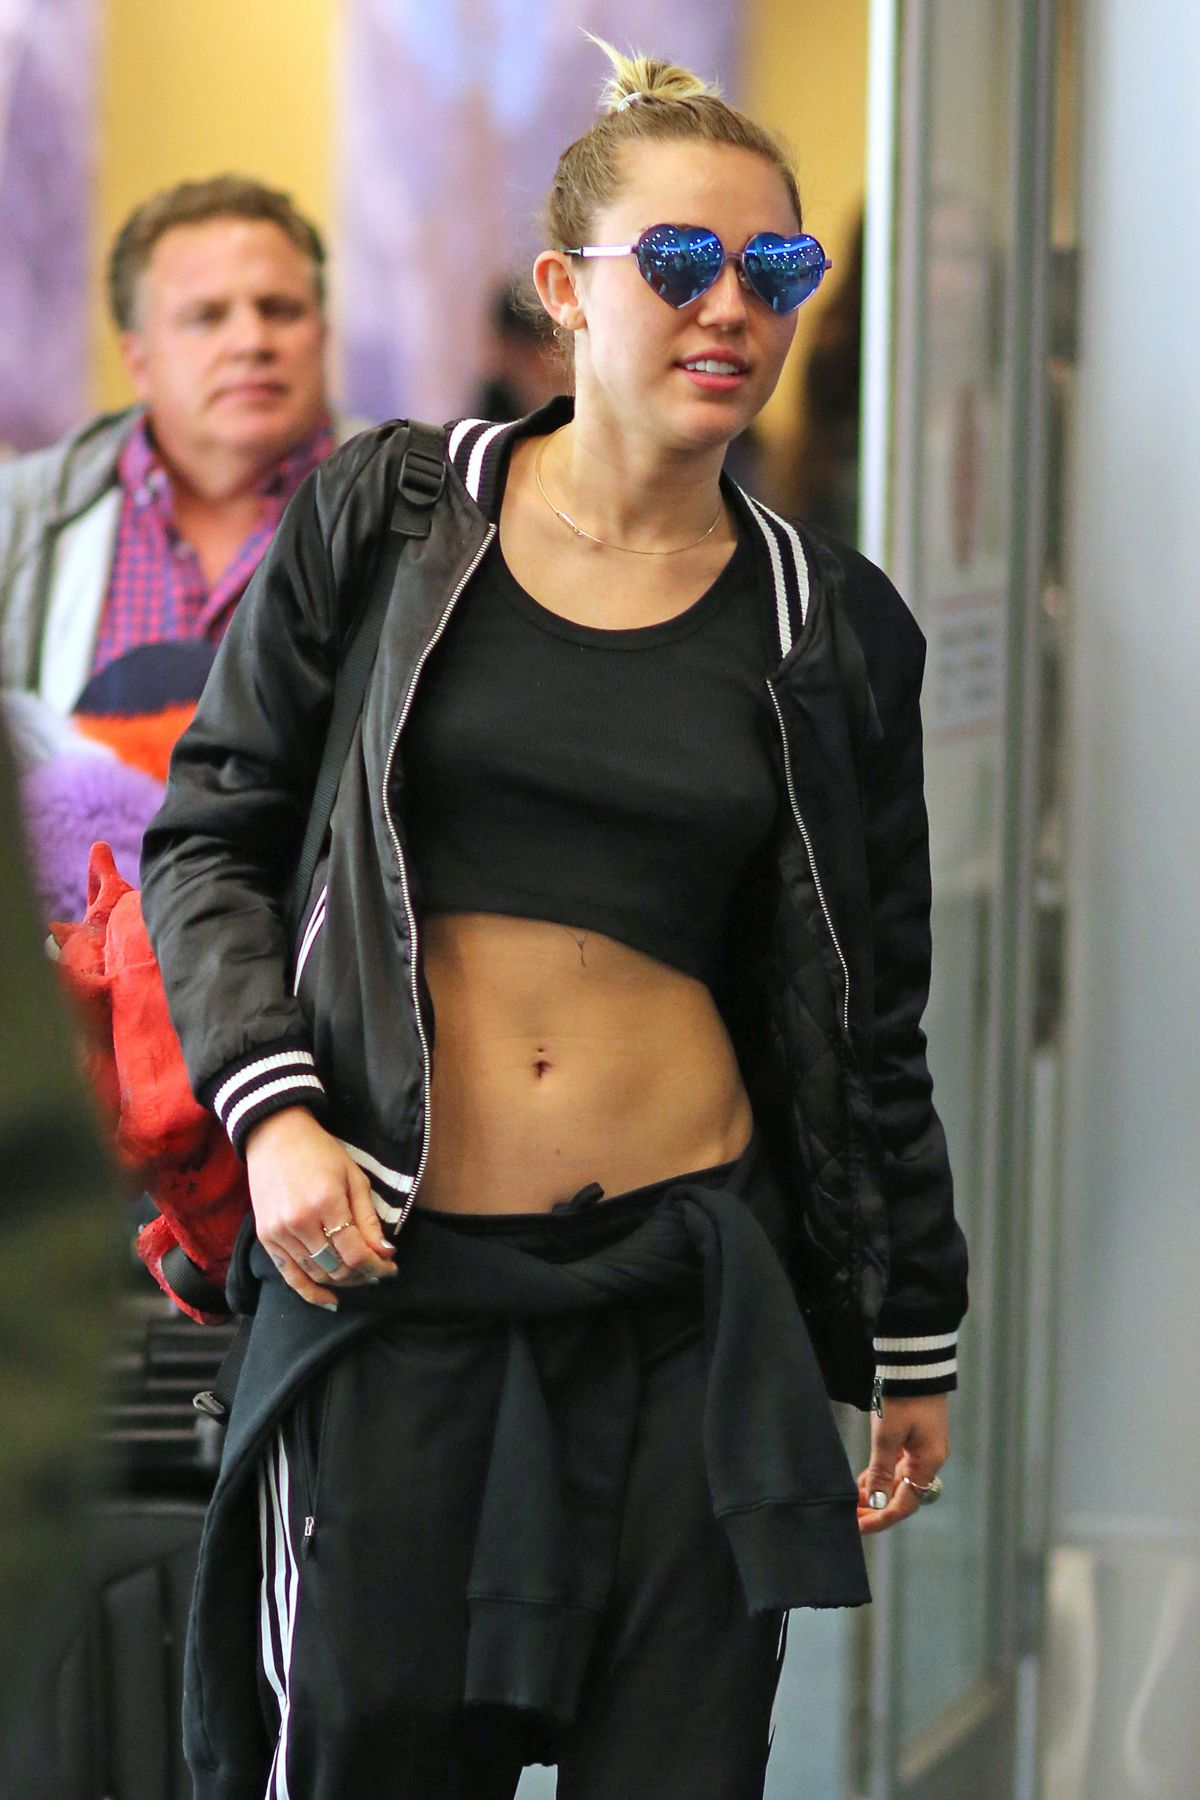 MILEY CYRUS at Vancouver International Airport 12/14/2015